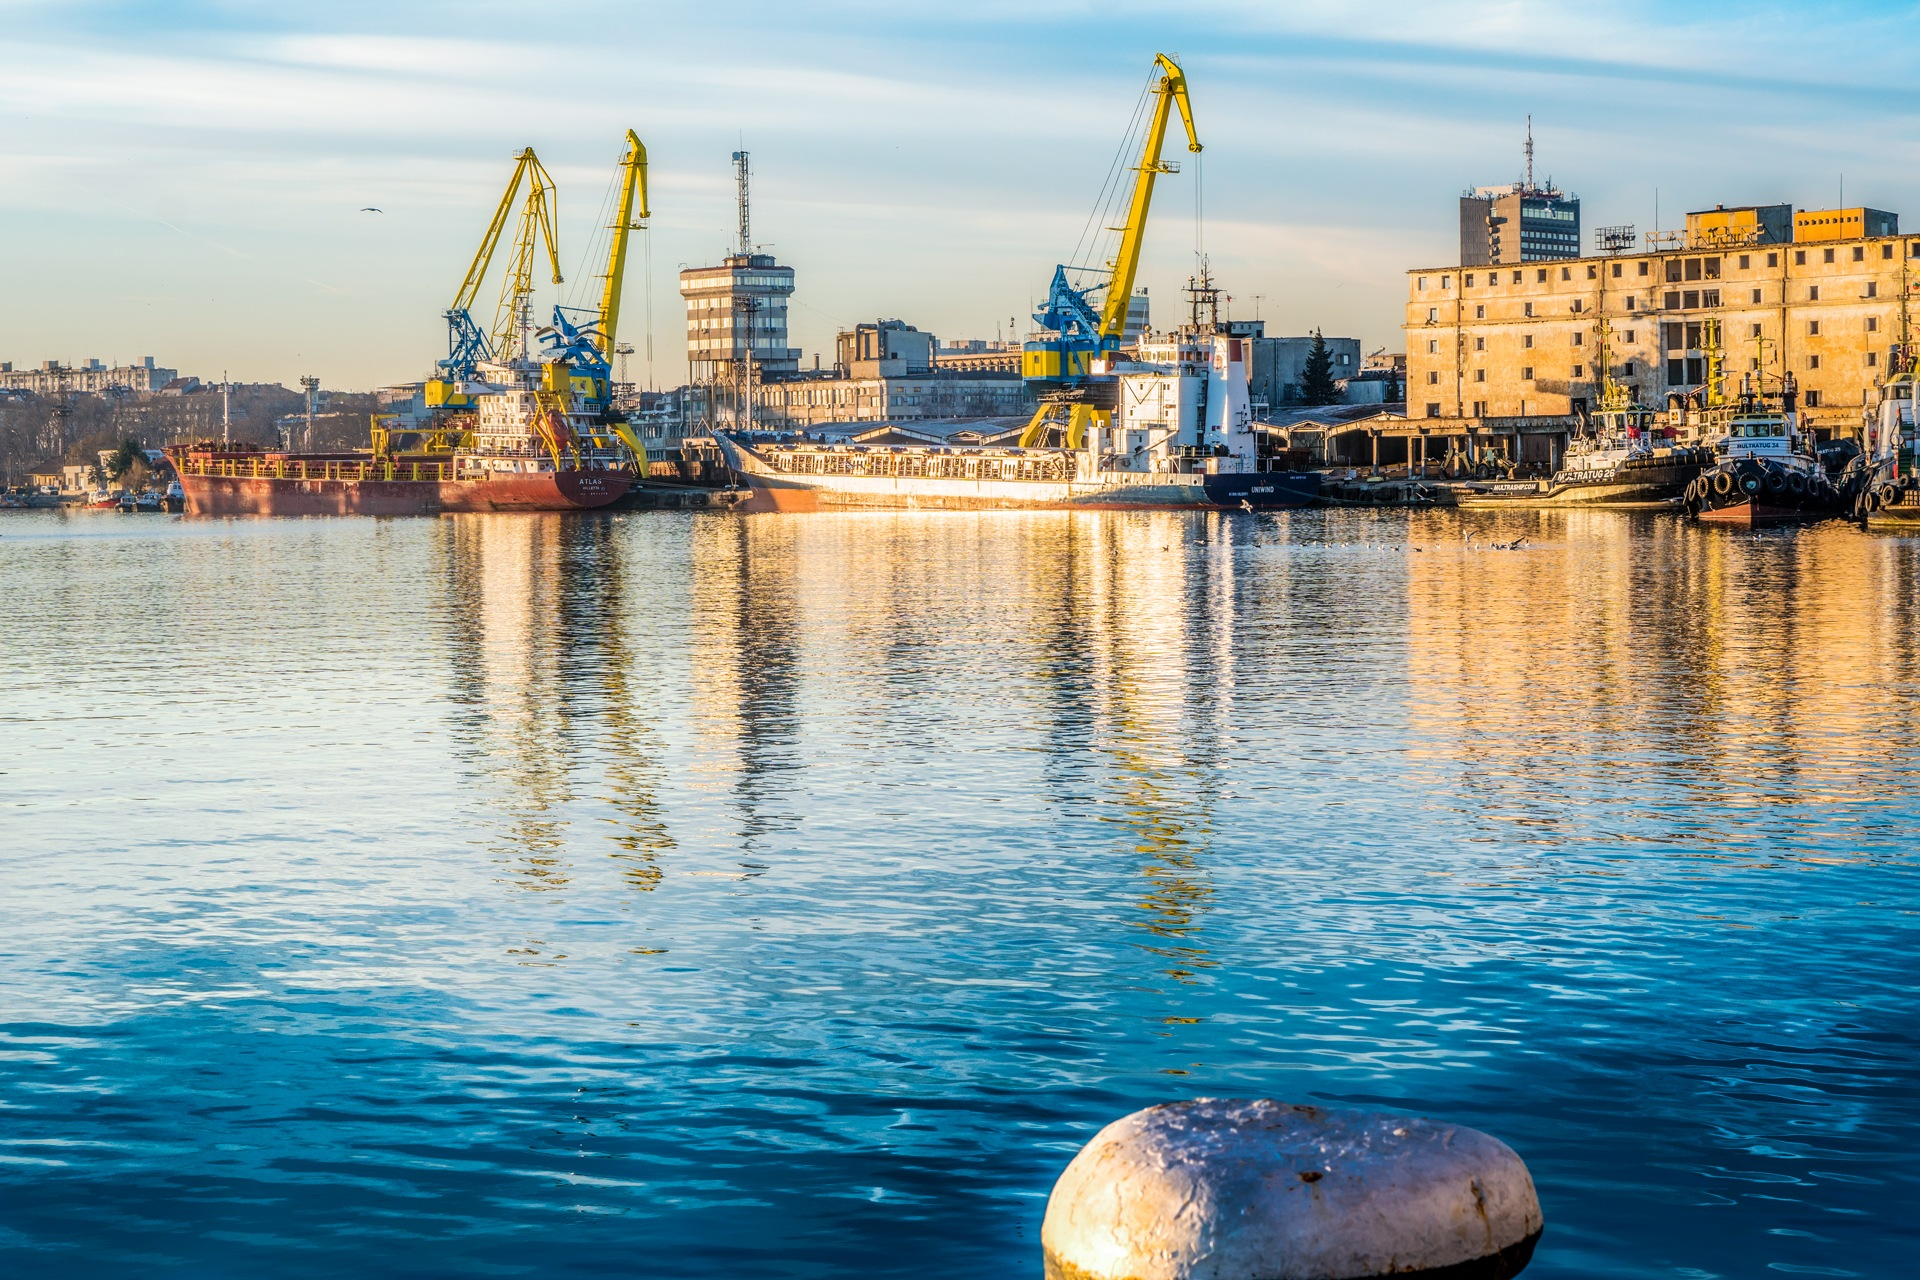 Reflections in the port by Venelin Todorov